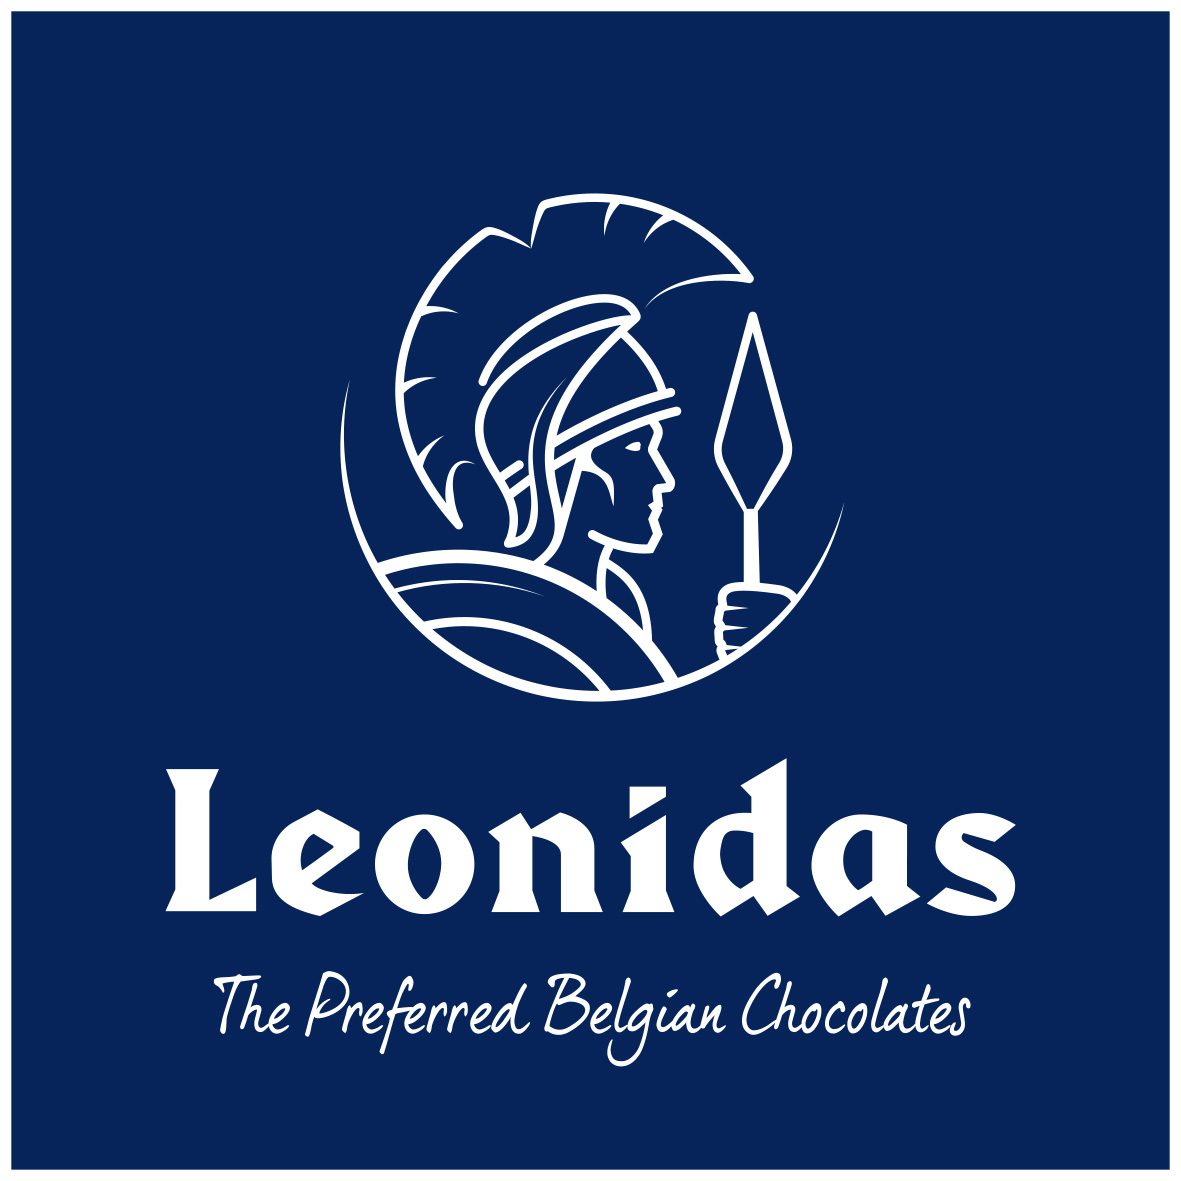 LEONIDAS CHOCOLATE BRIGHTON